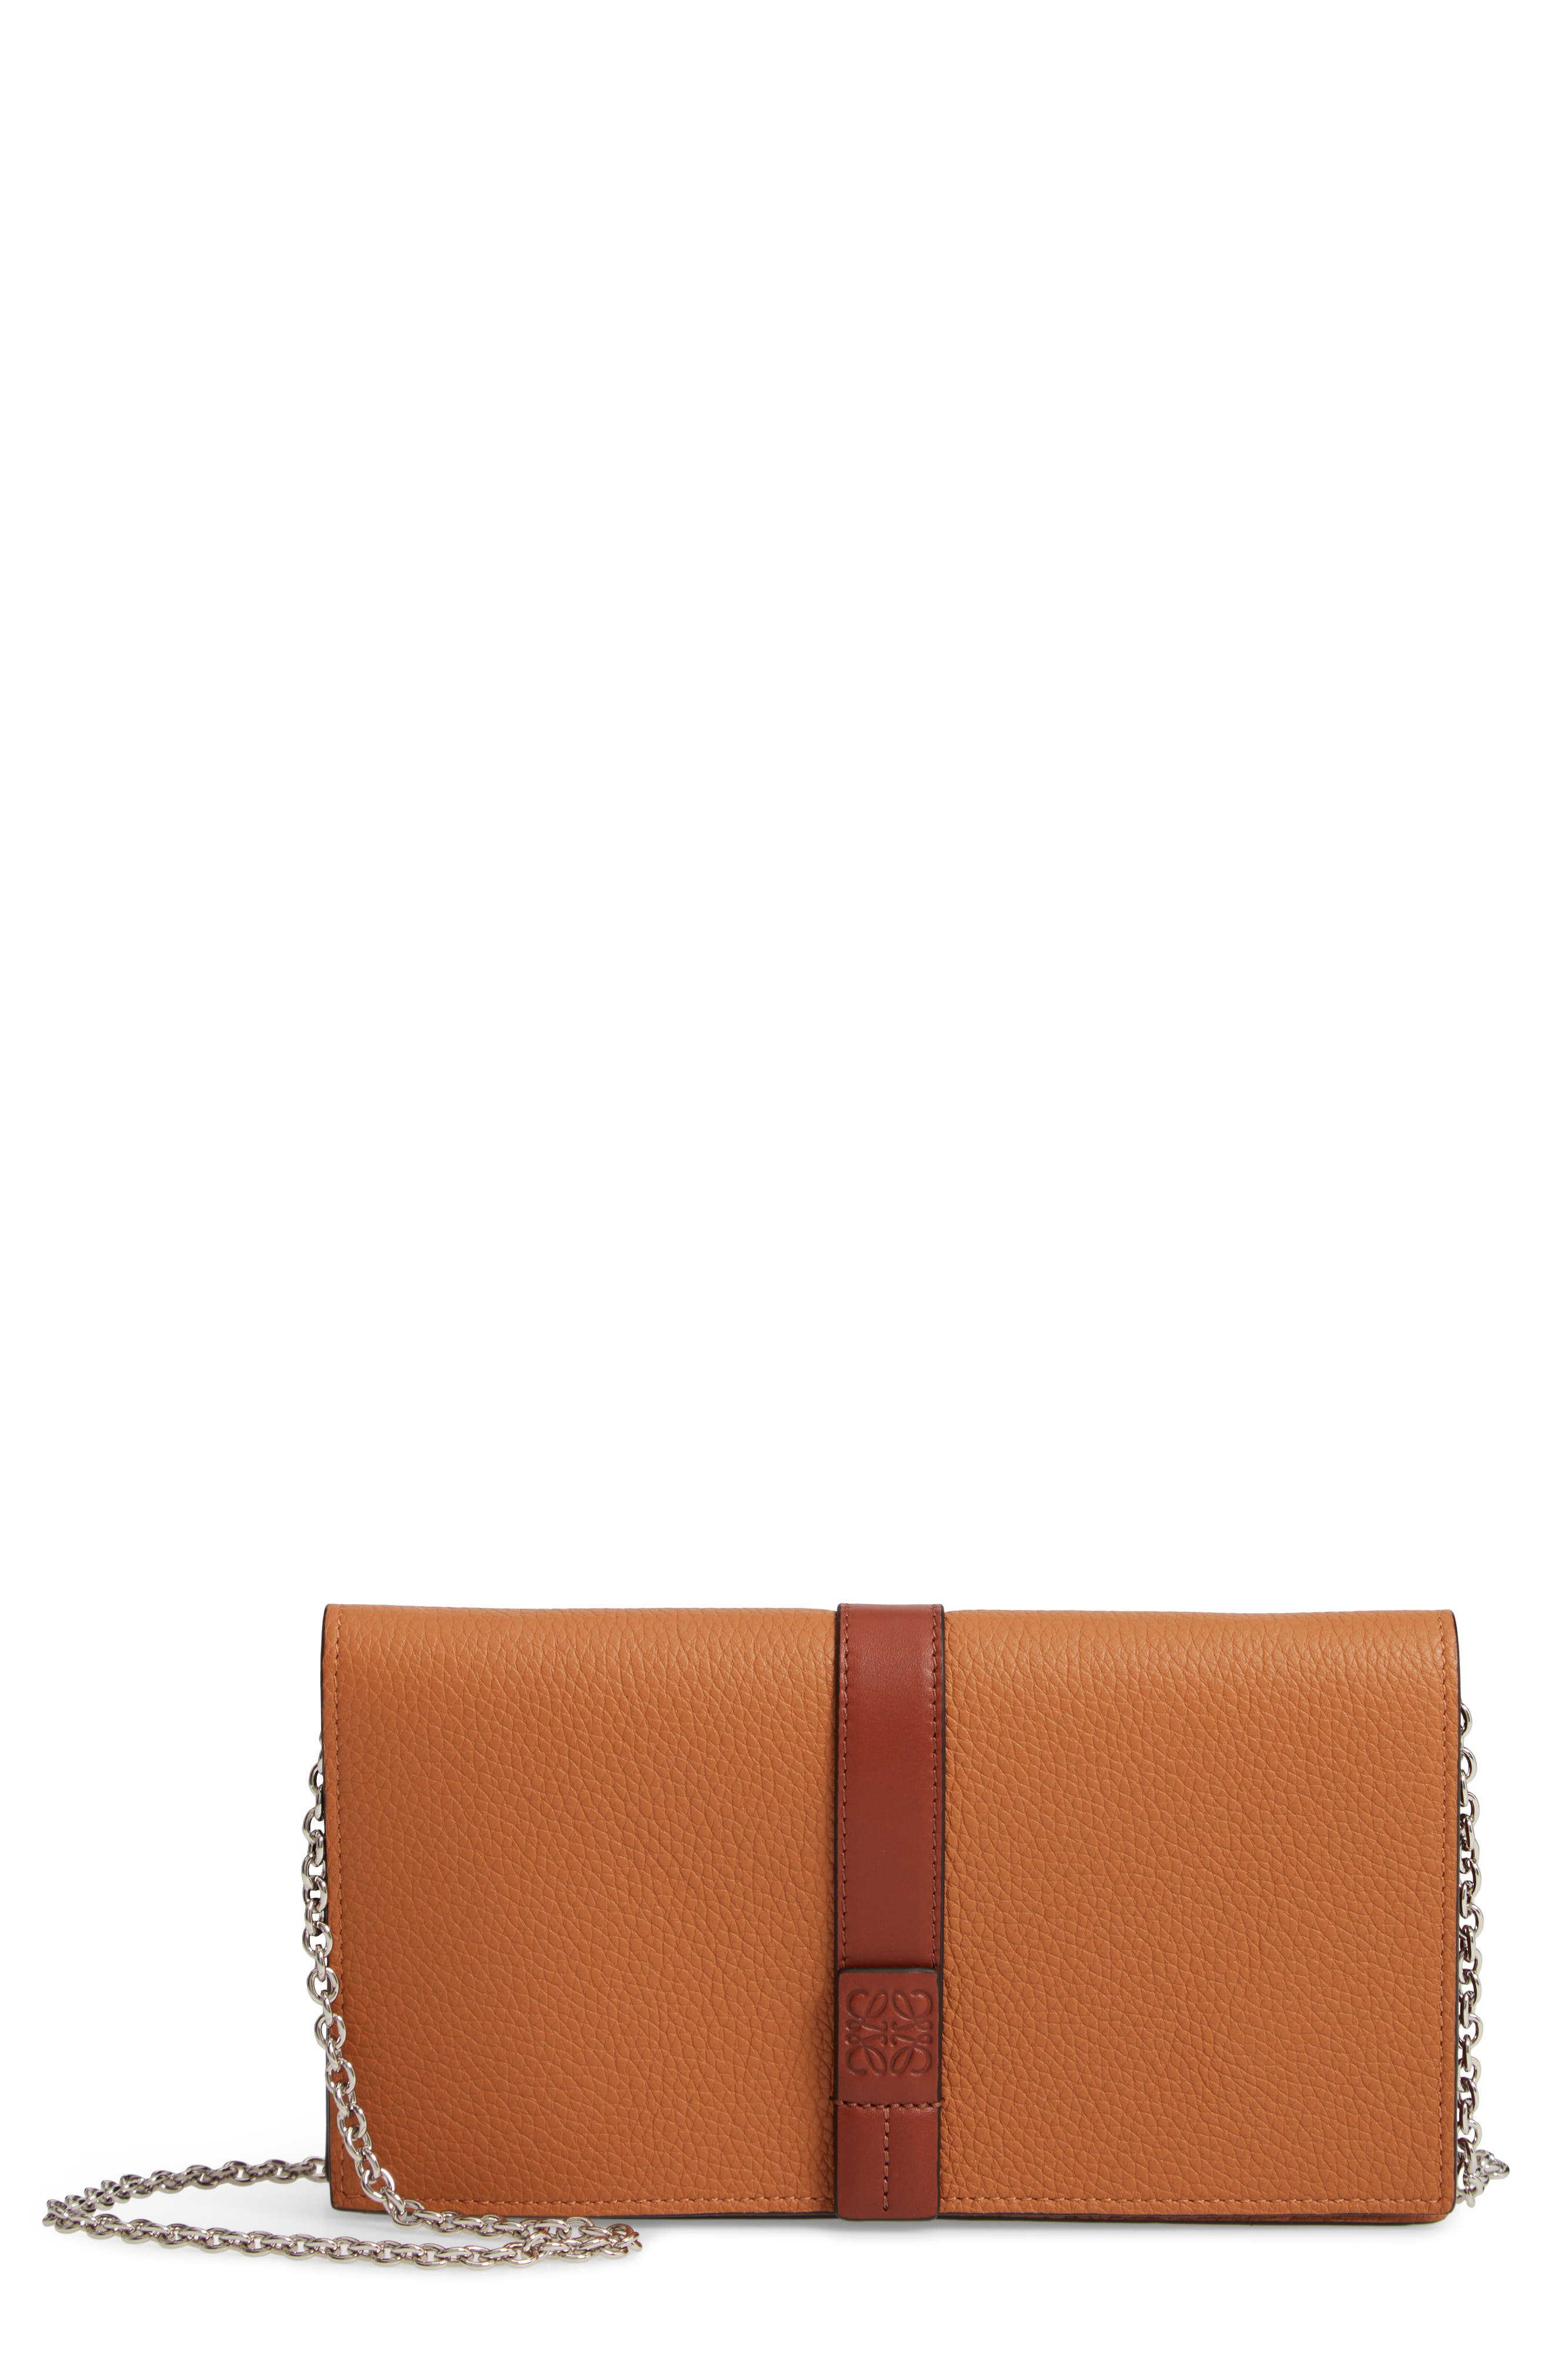 Leather Wallet on a Chain,                             Main thumbnail 1, color,                             LIGHT CARAMEL/ PECAN